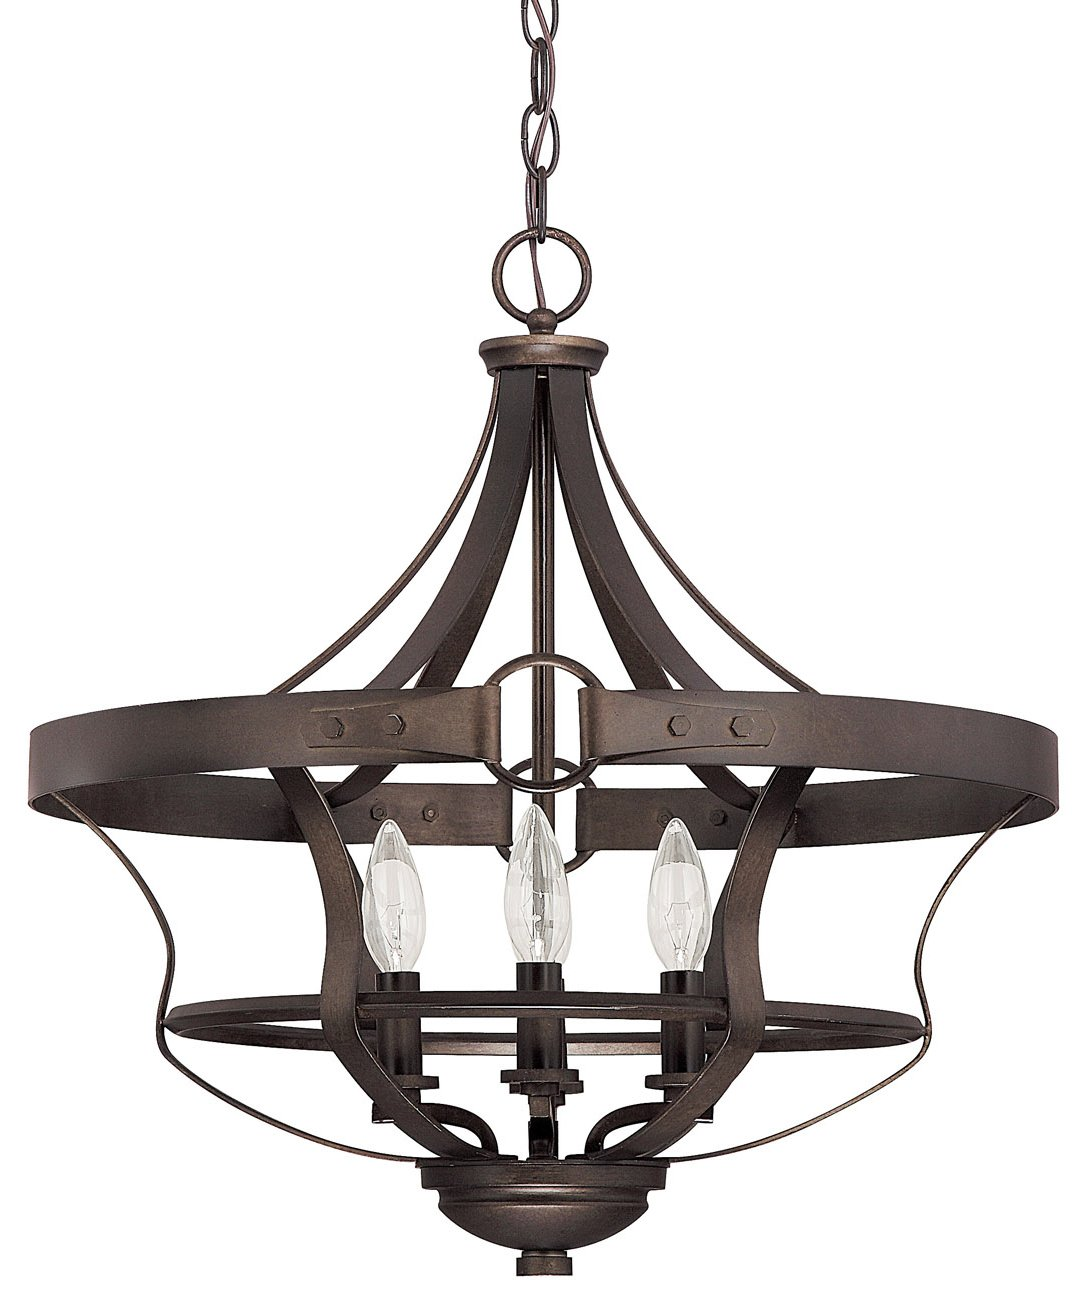 Traditional Foyer Light Fixtures : Capital lighting tb chastain traditional foyer light